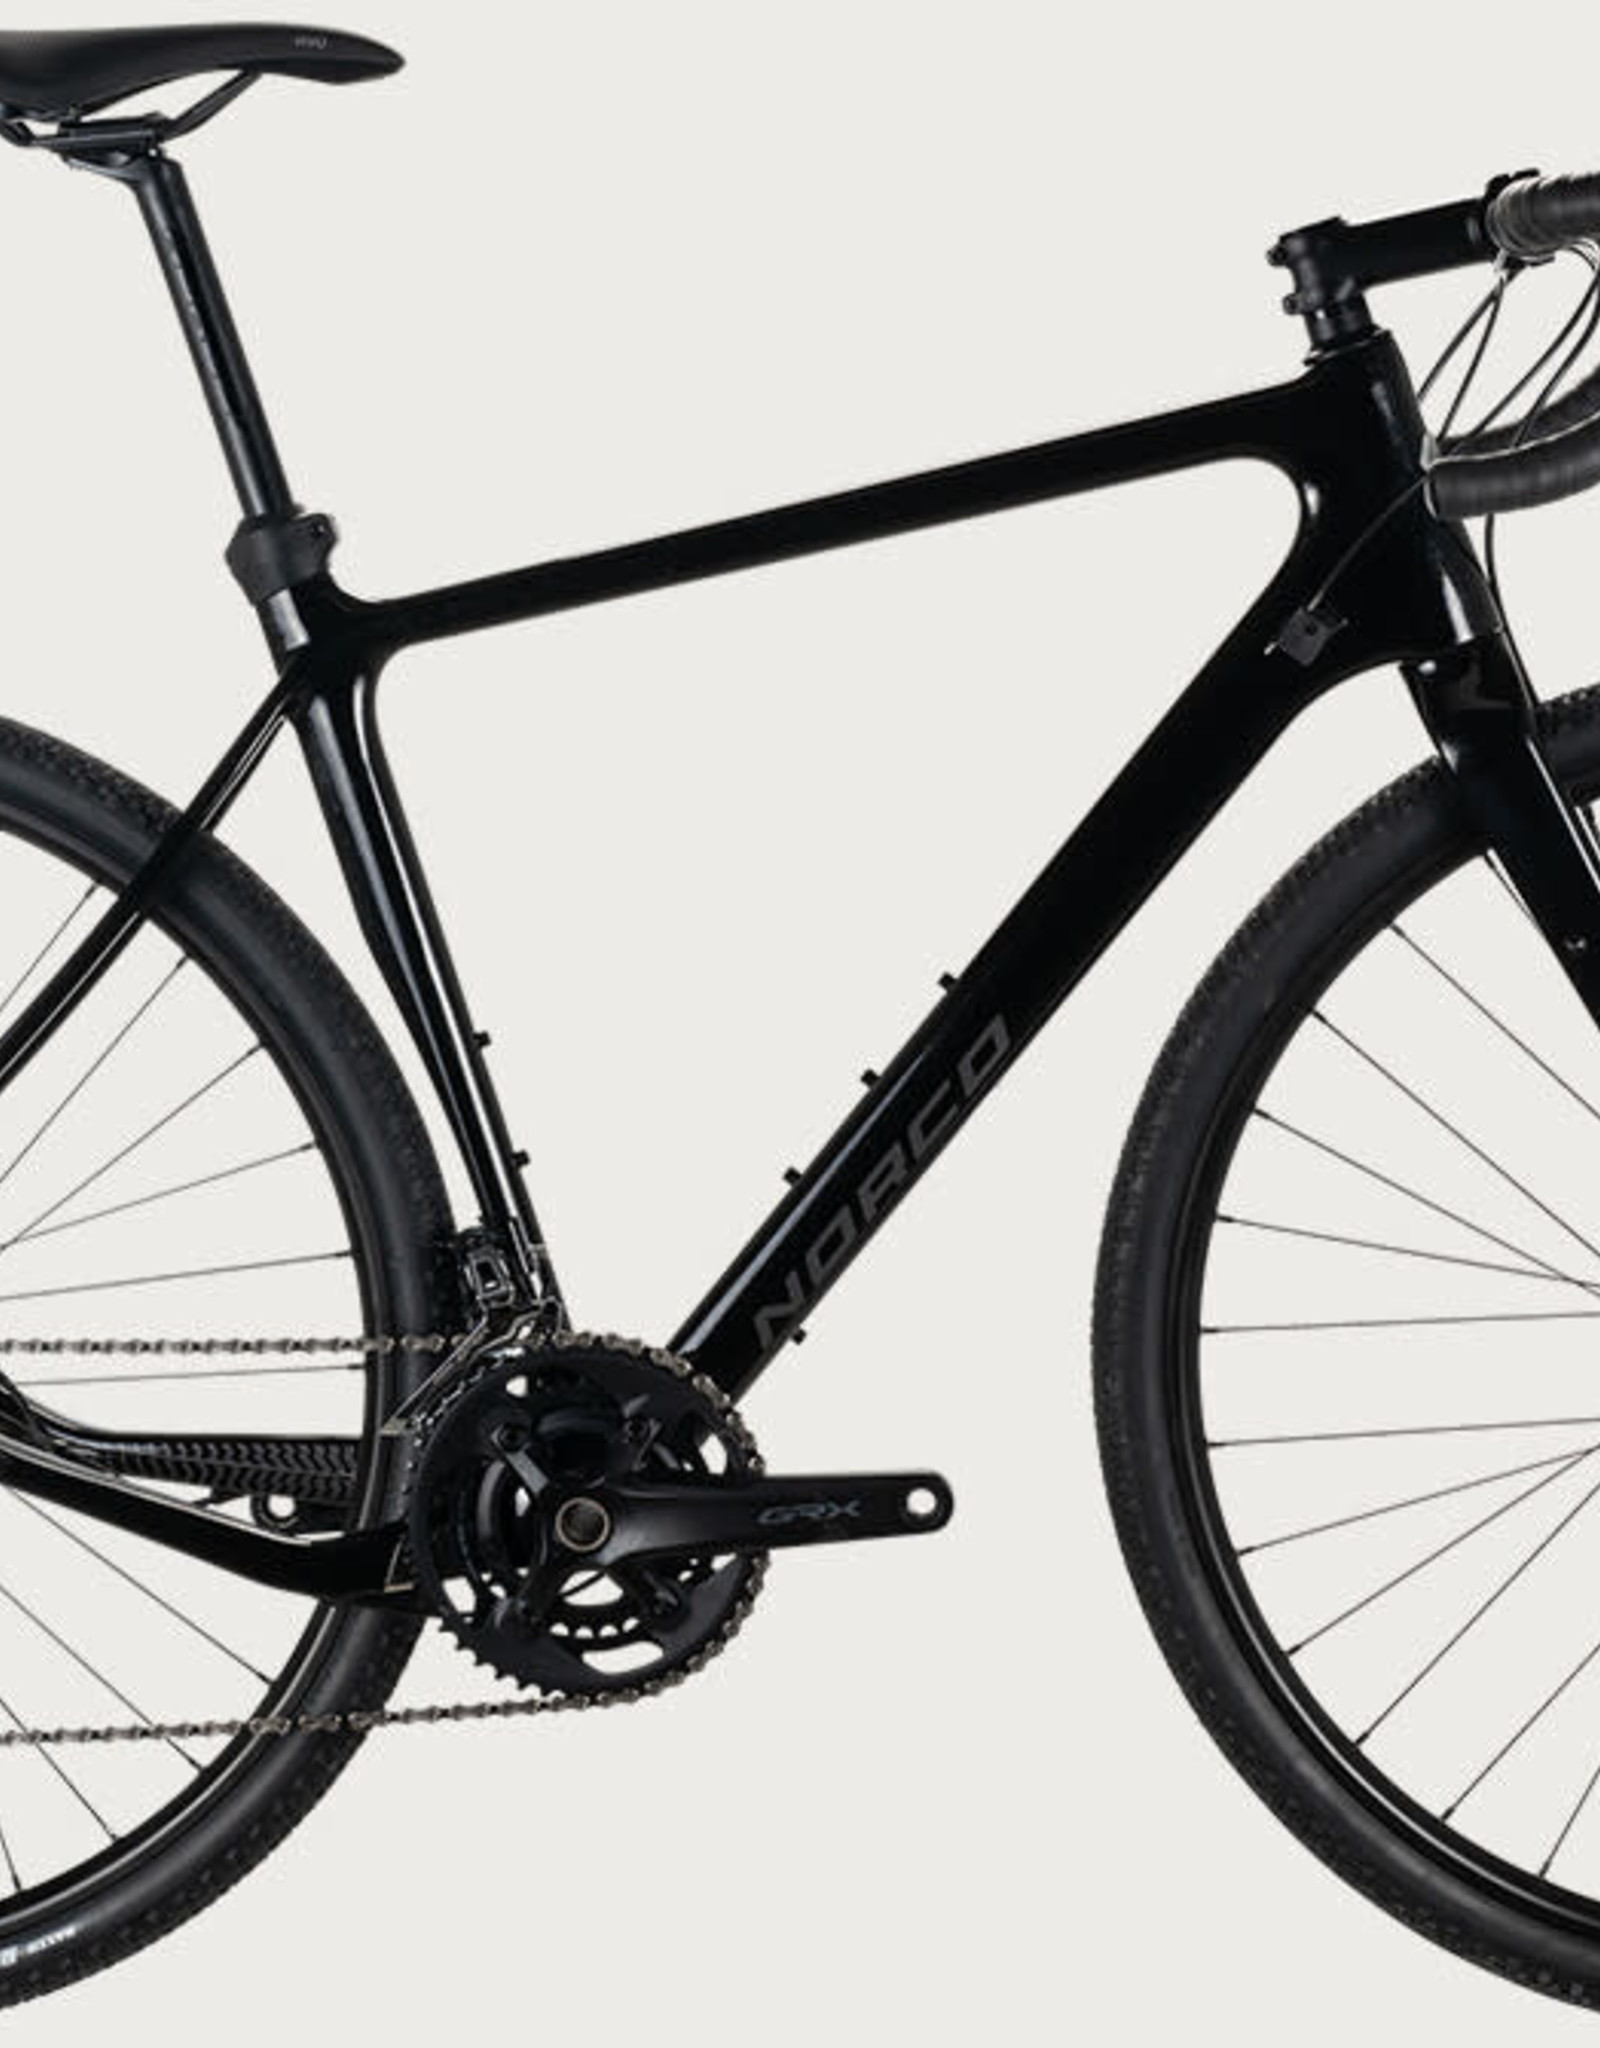 NORCO Norco Search XR C 55.5 Blk/Sil